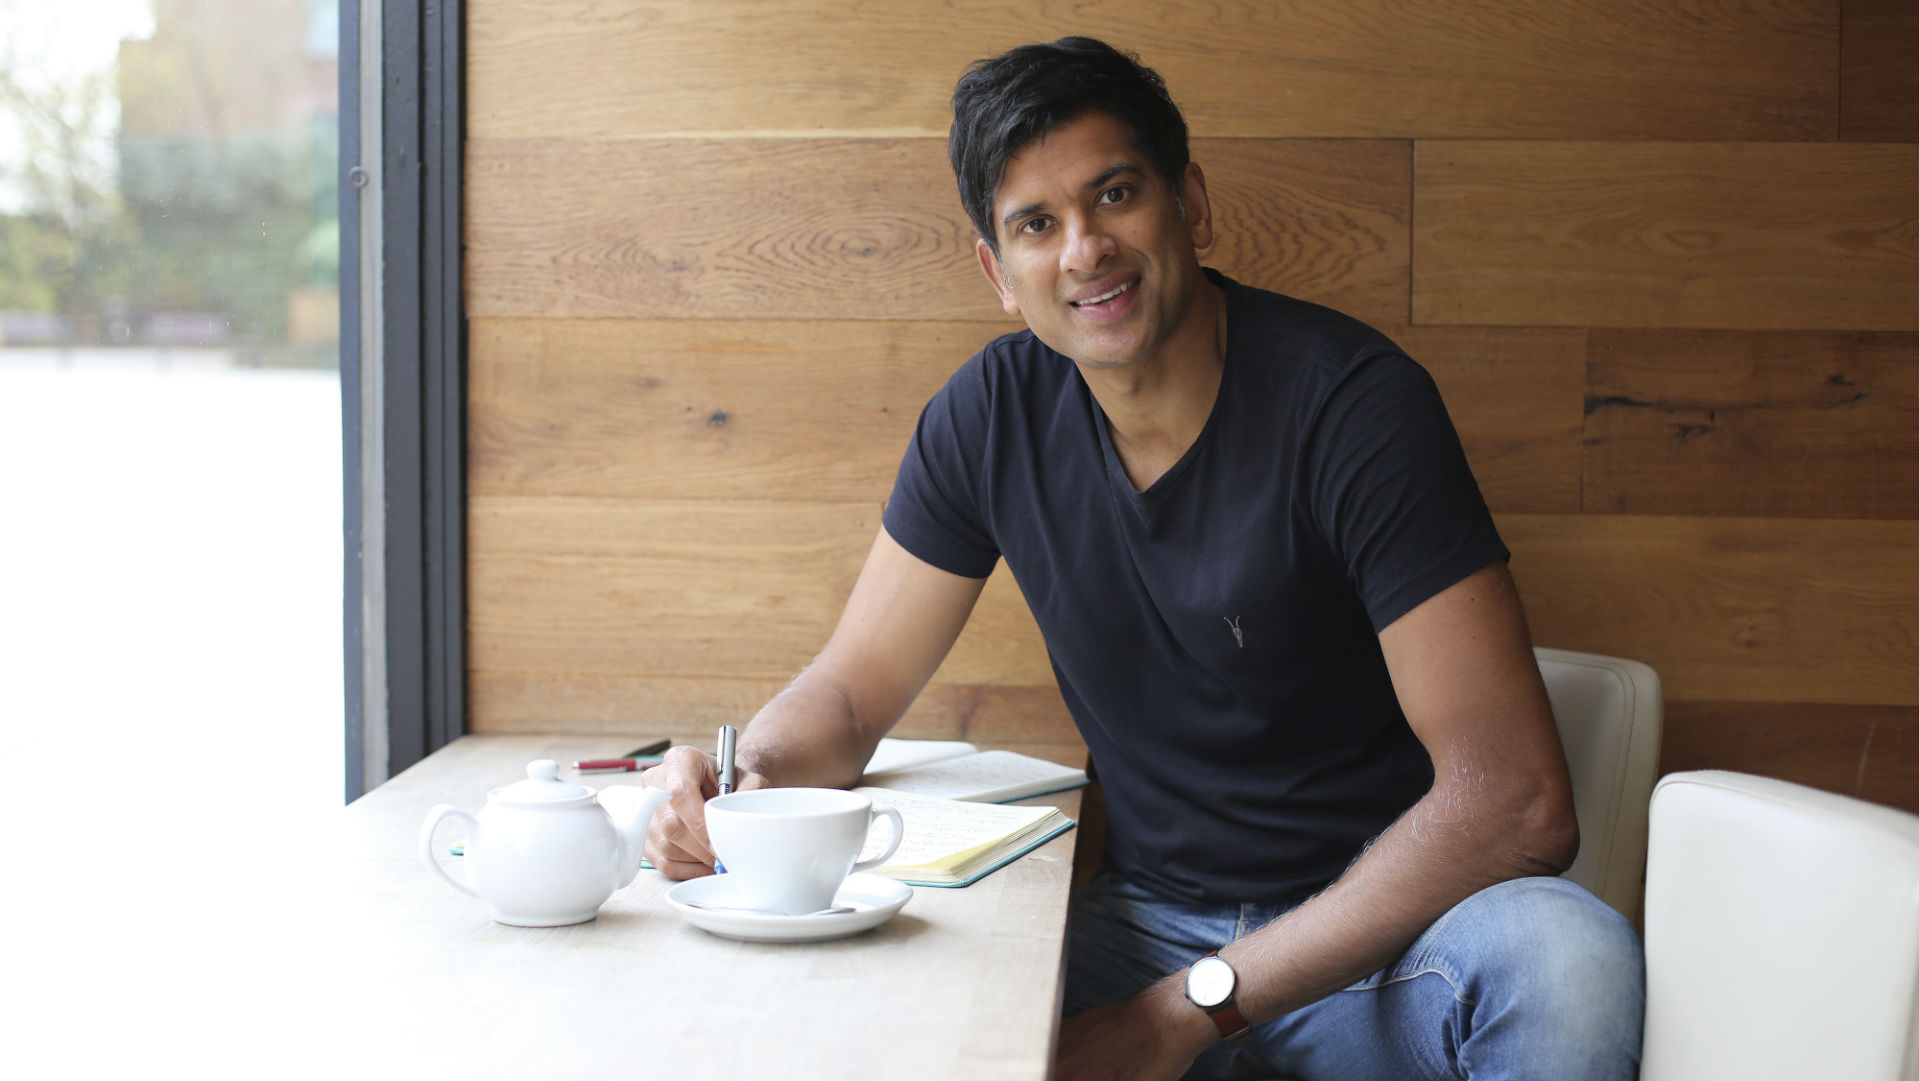 Dr Rangan Chatterjee believes his new health plan could transform businesses across the UK. He explains how to be less stressed.